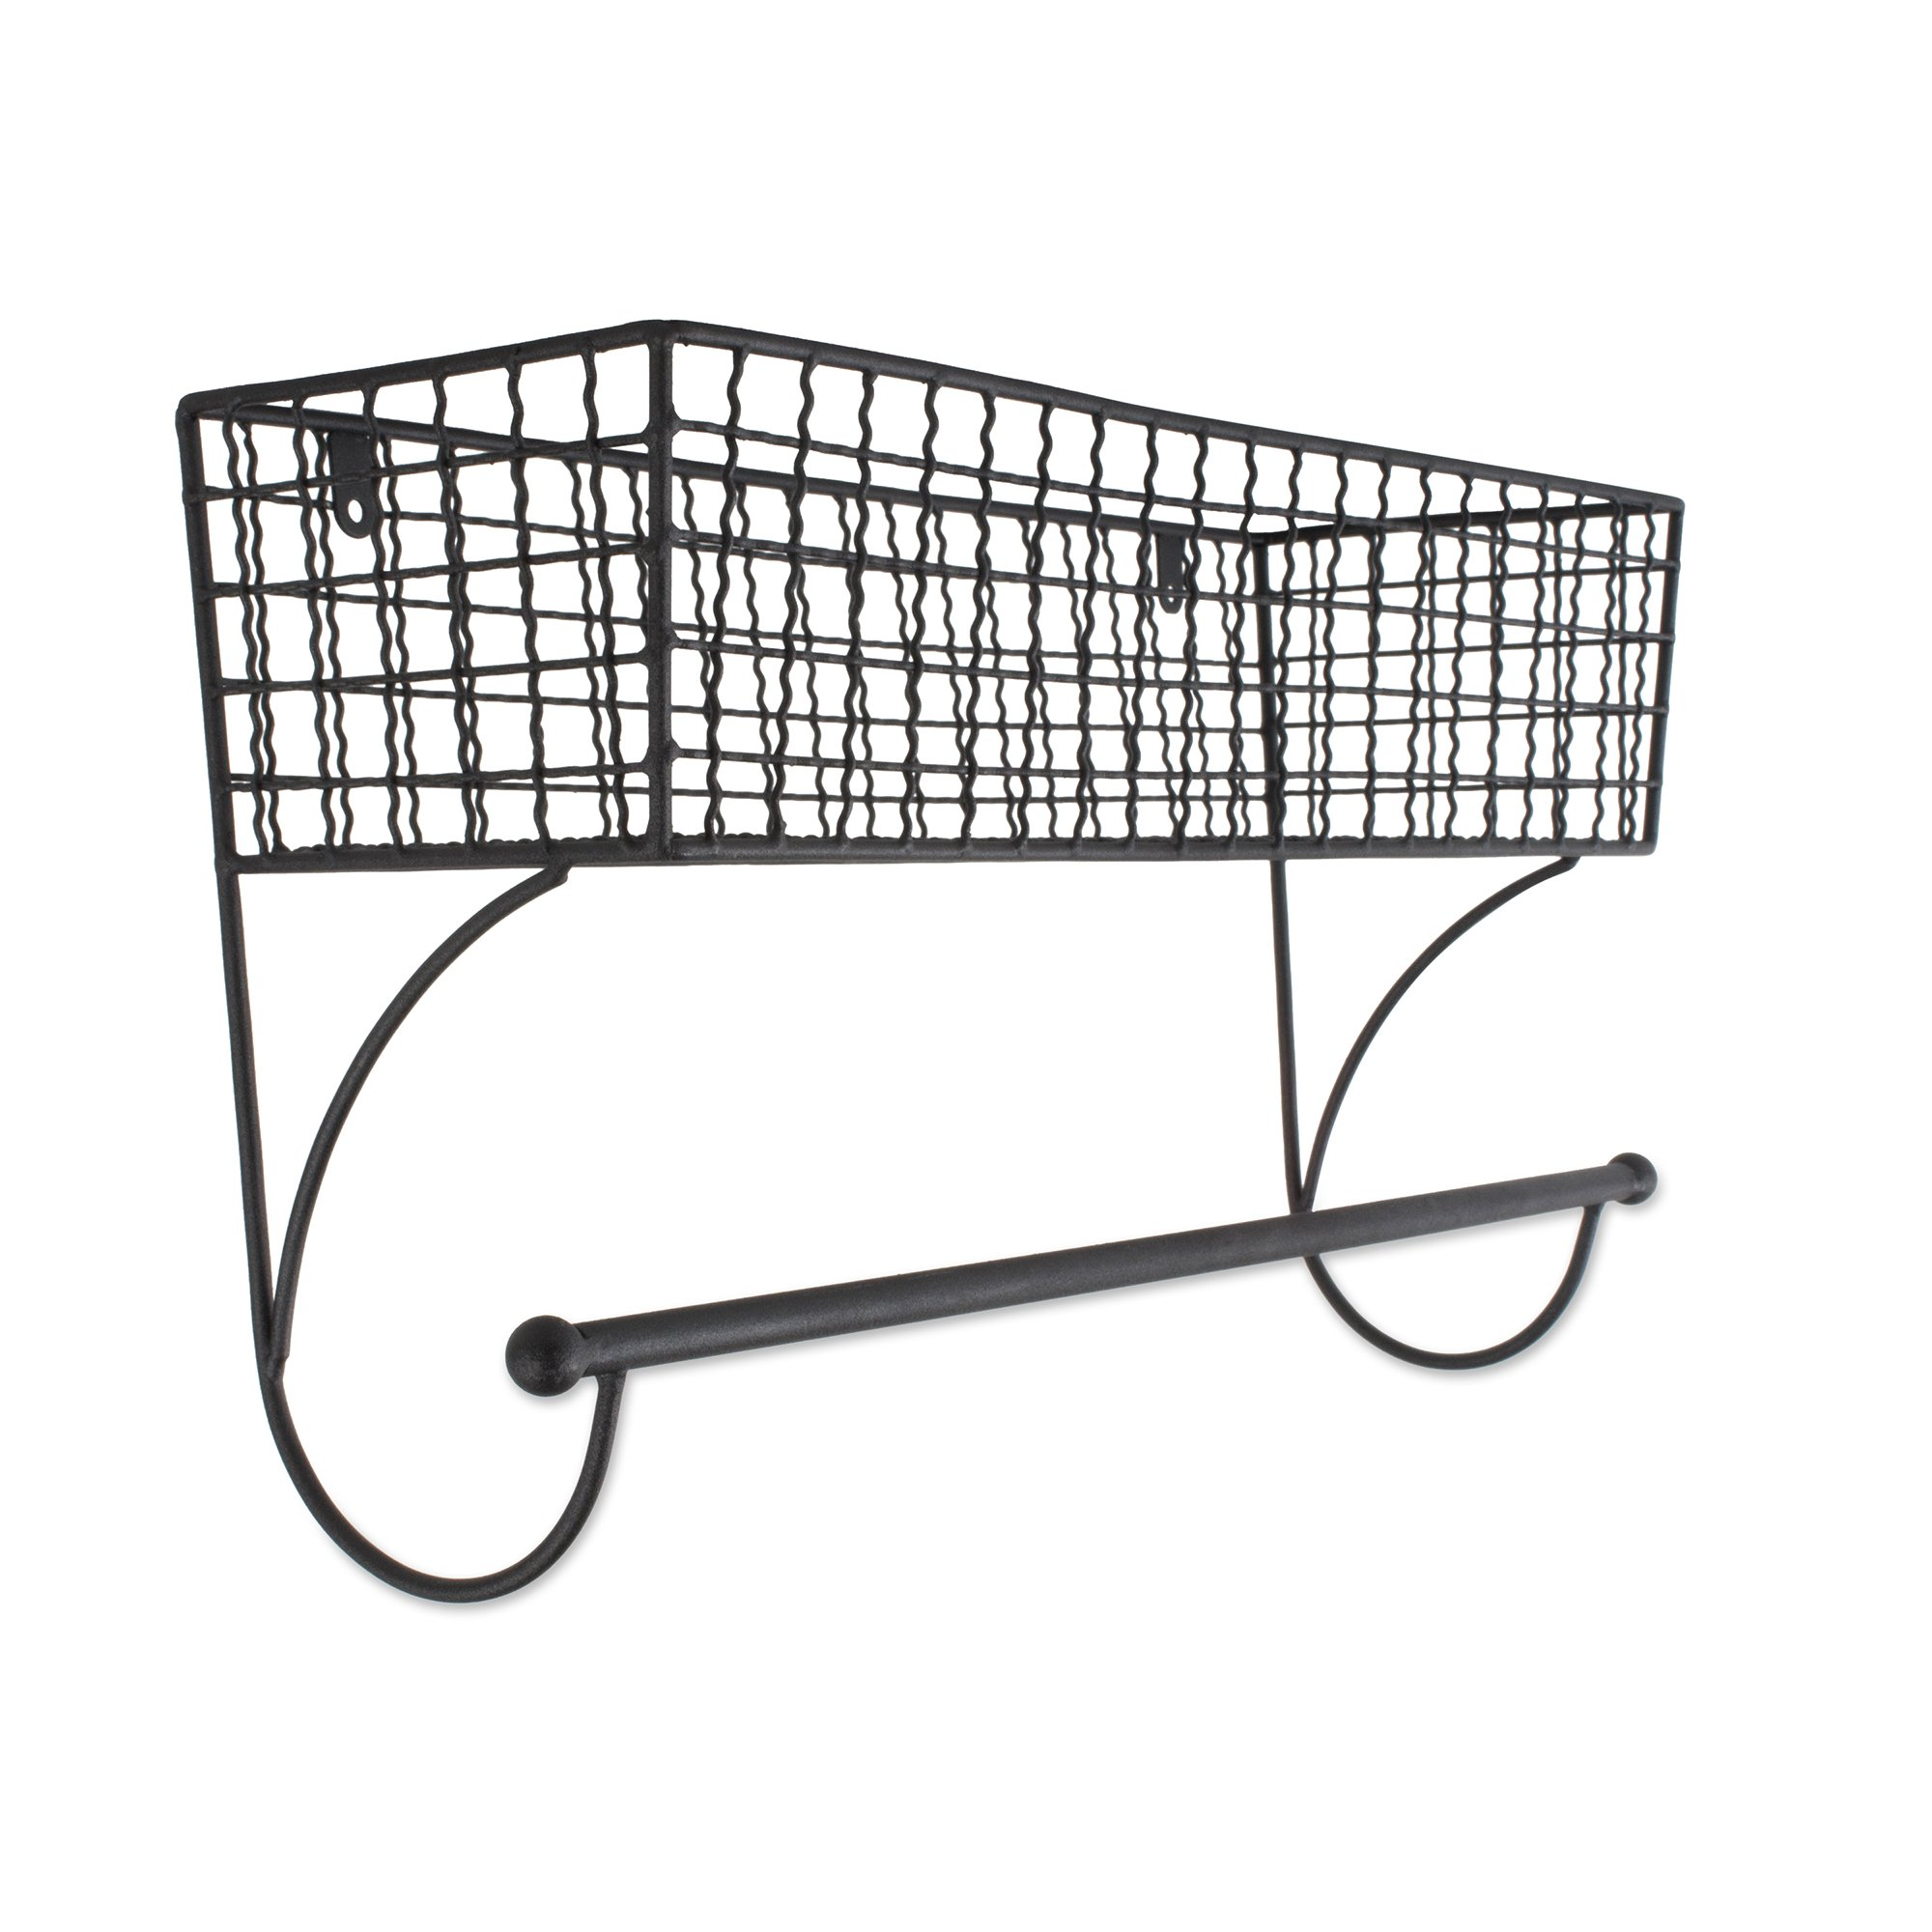 Home Traditions Z02225 Rustic Metal Wall Mount Shelf with Towel Bar, Large, Black by Home Traditions